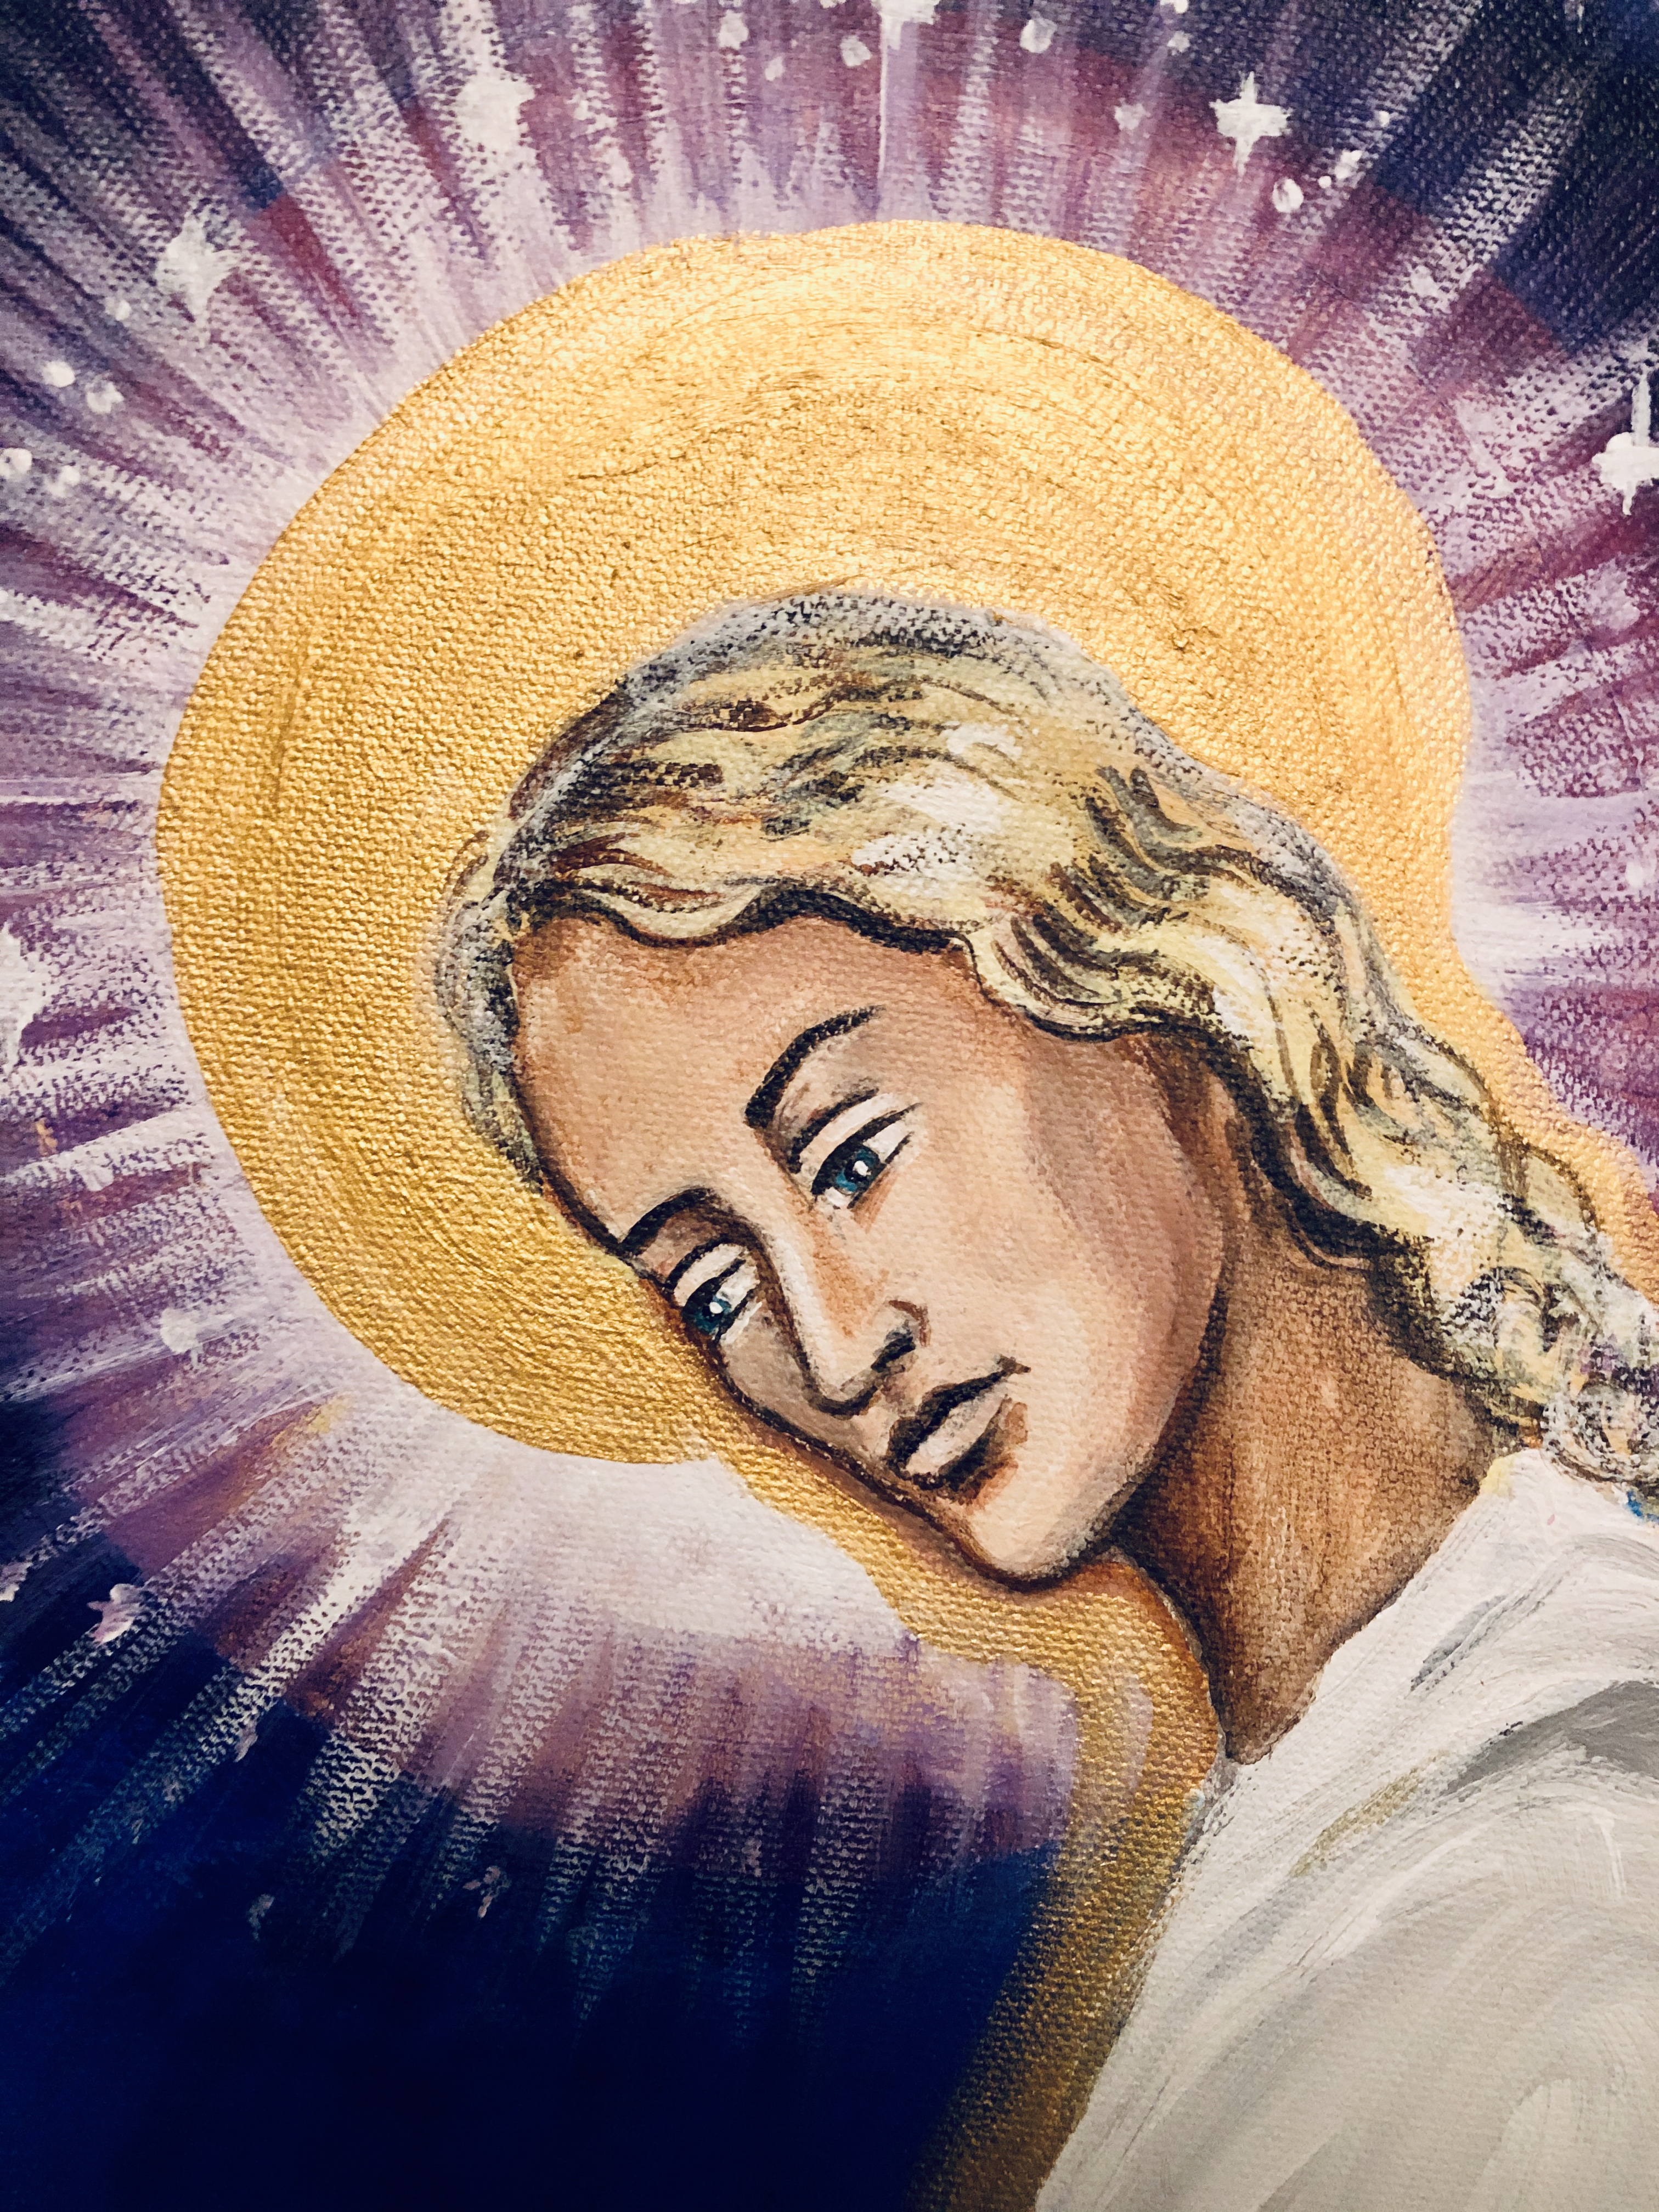 Divine Guidance (detail)